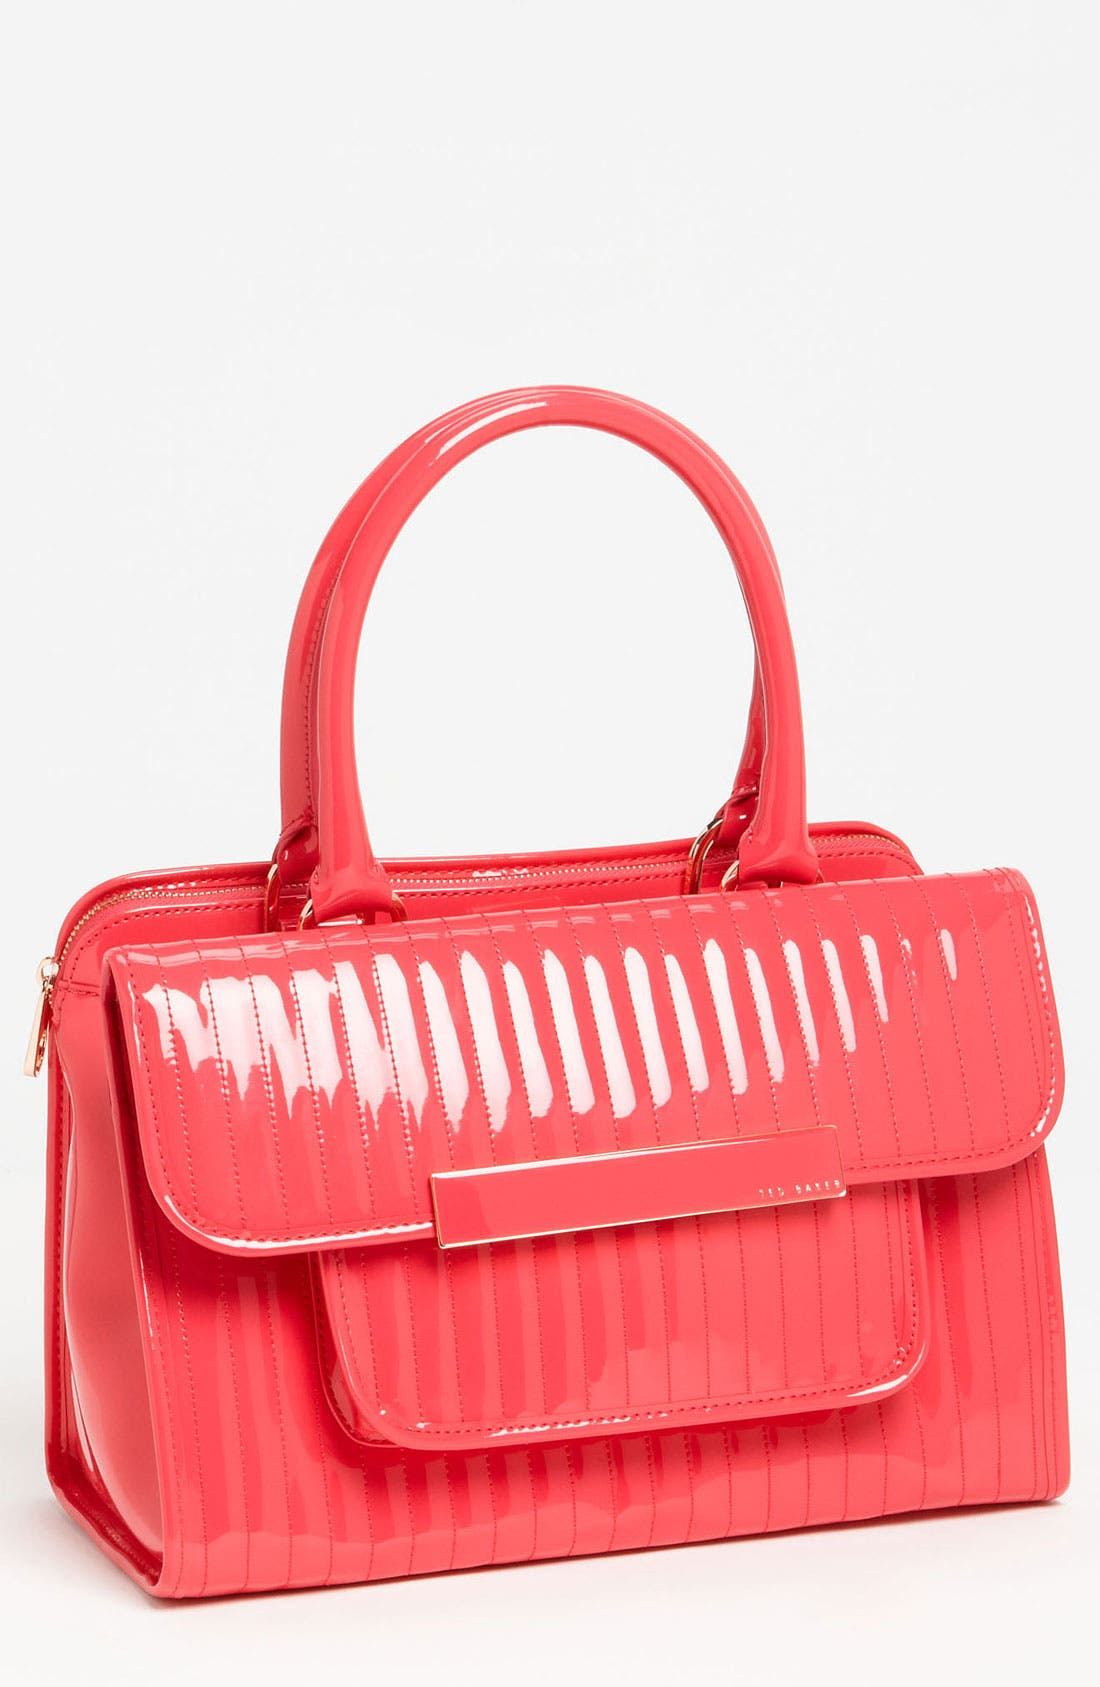 'Mardun' Satchel,                         Main,                         color, Mid Pink